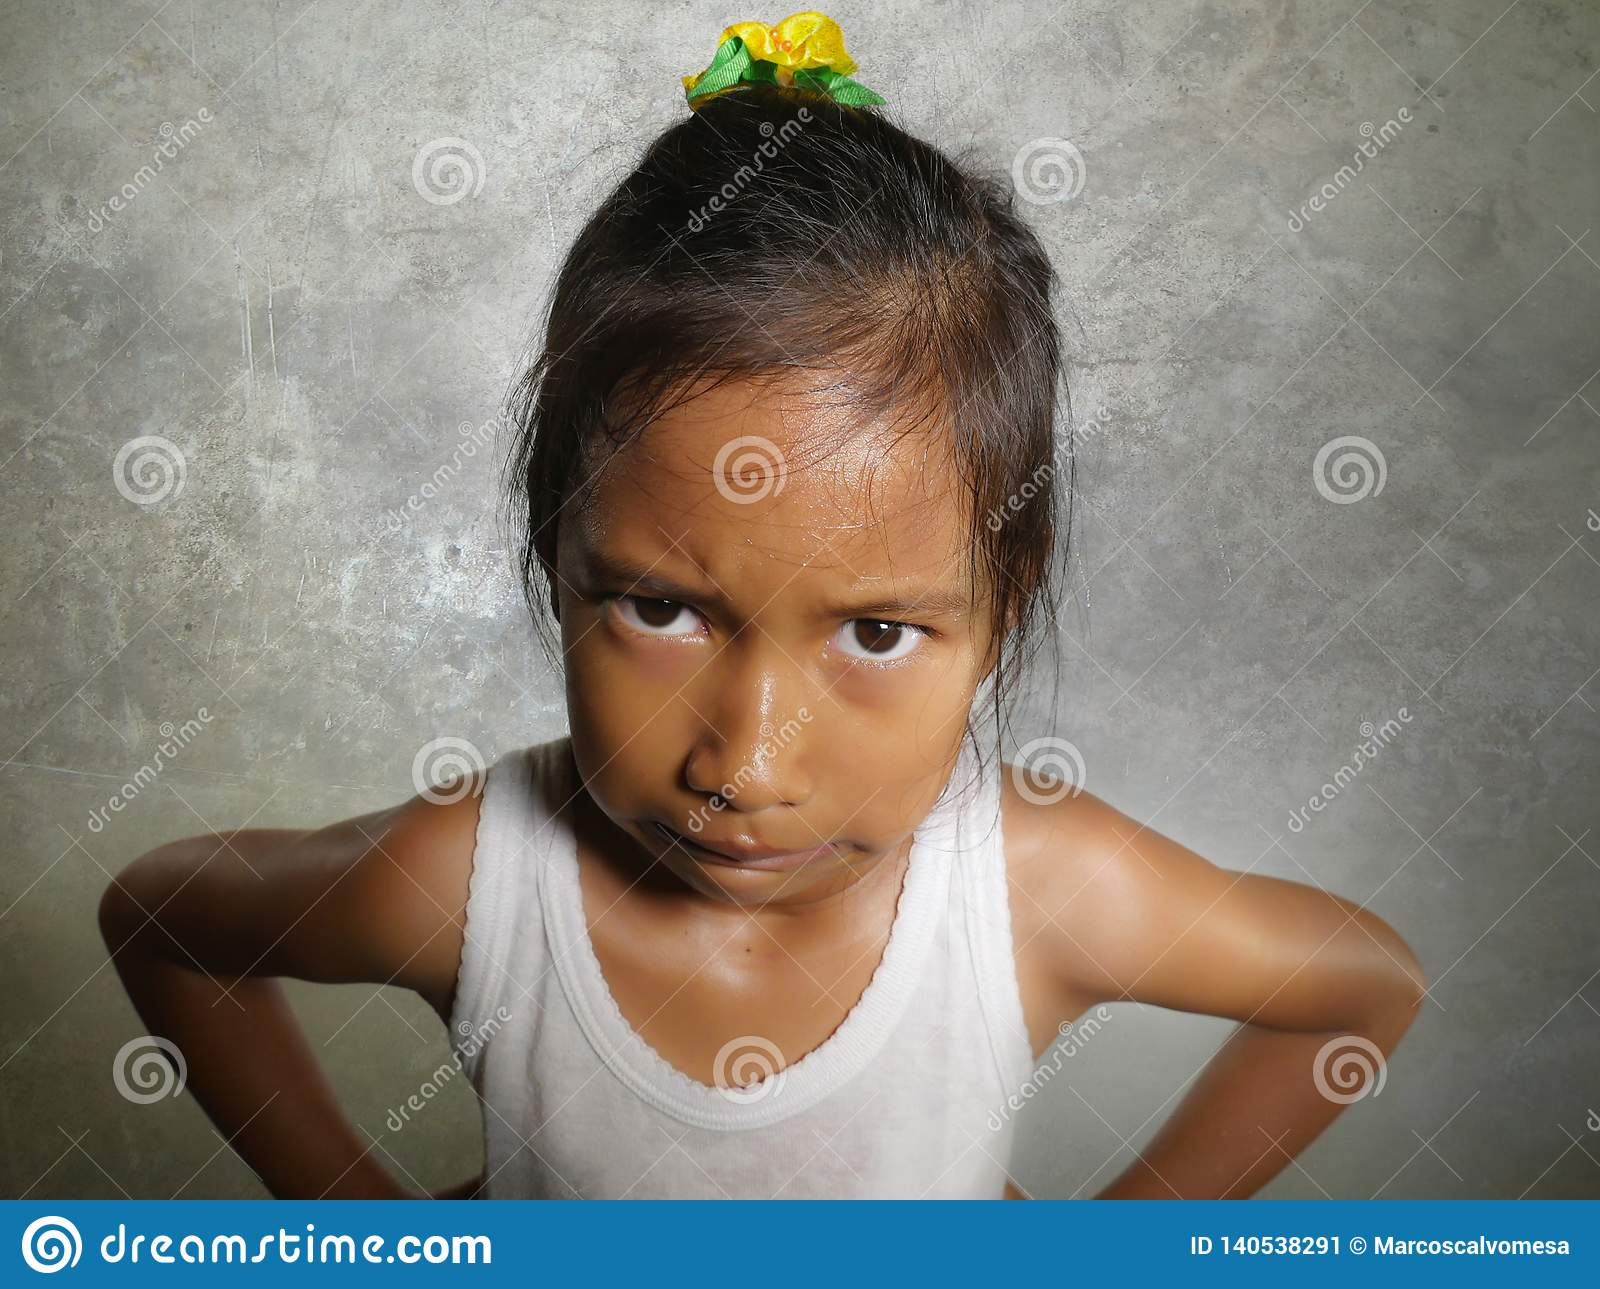 Funny portrait of sweet angry and mad 8 or 9 years old child looking upset to the camera feeling and unhappy isolated on